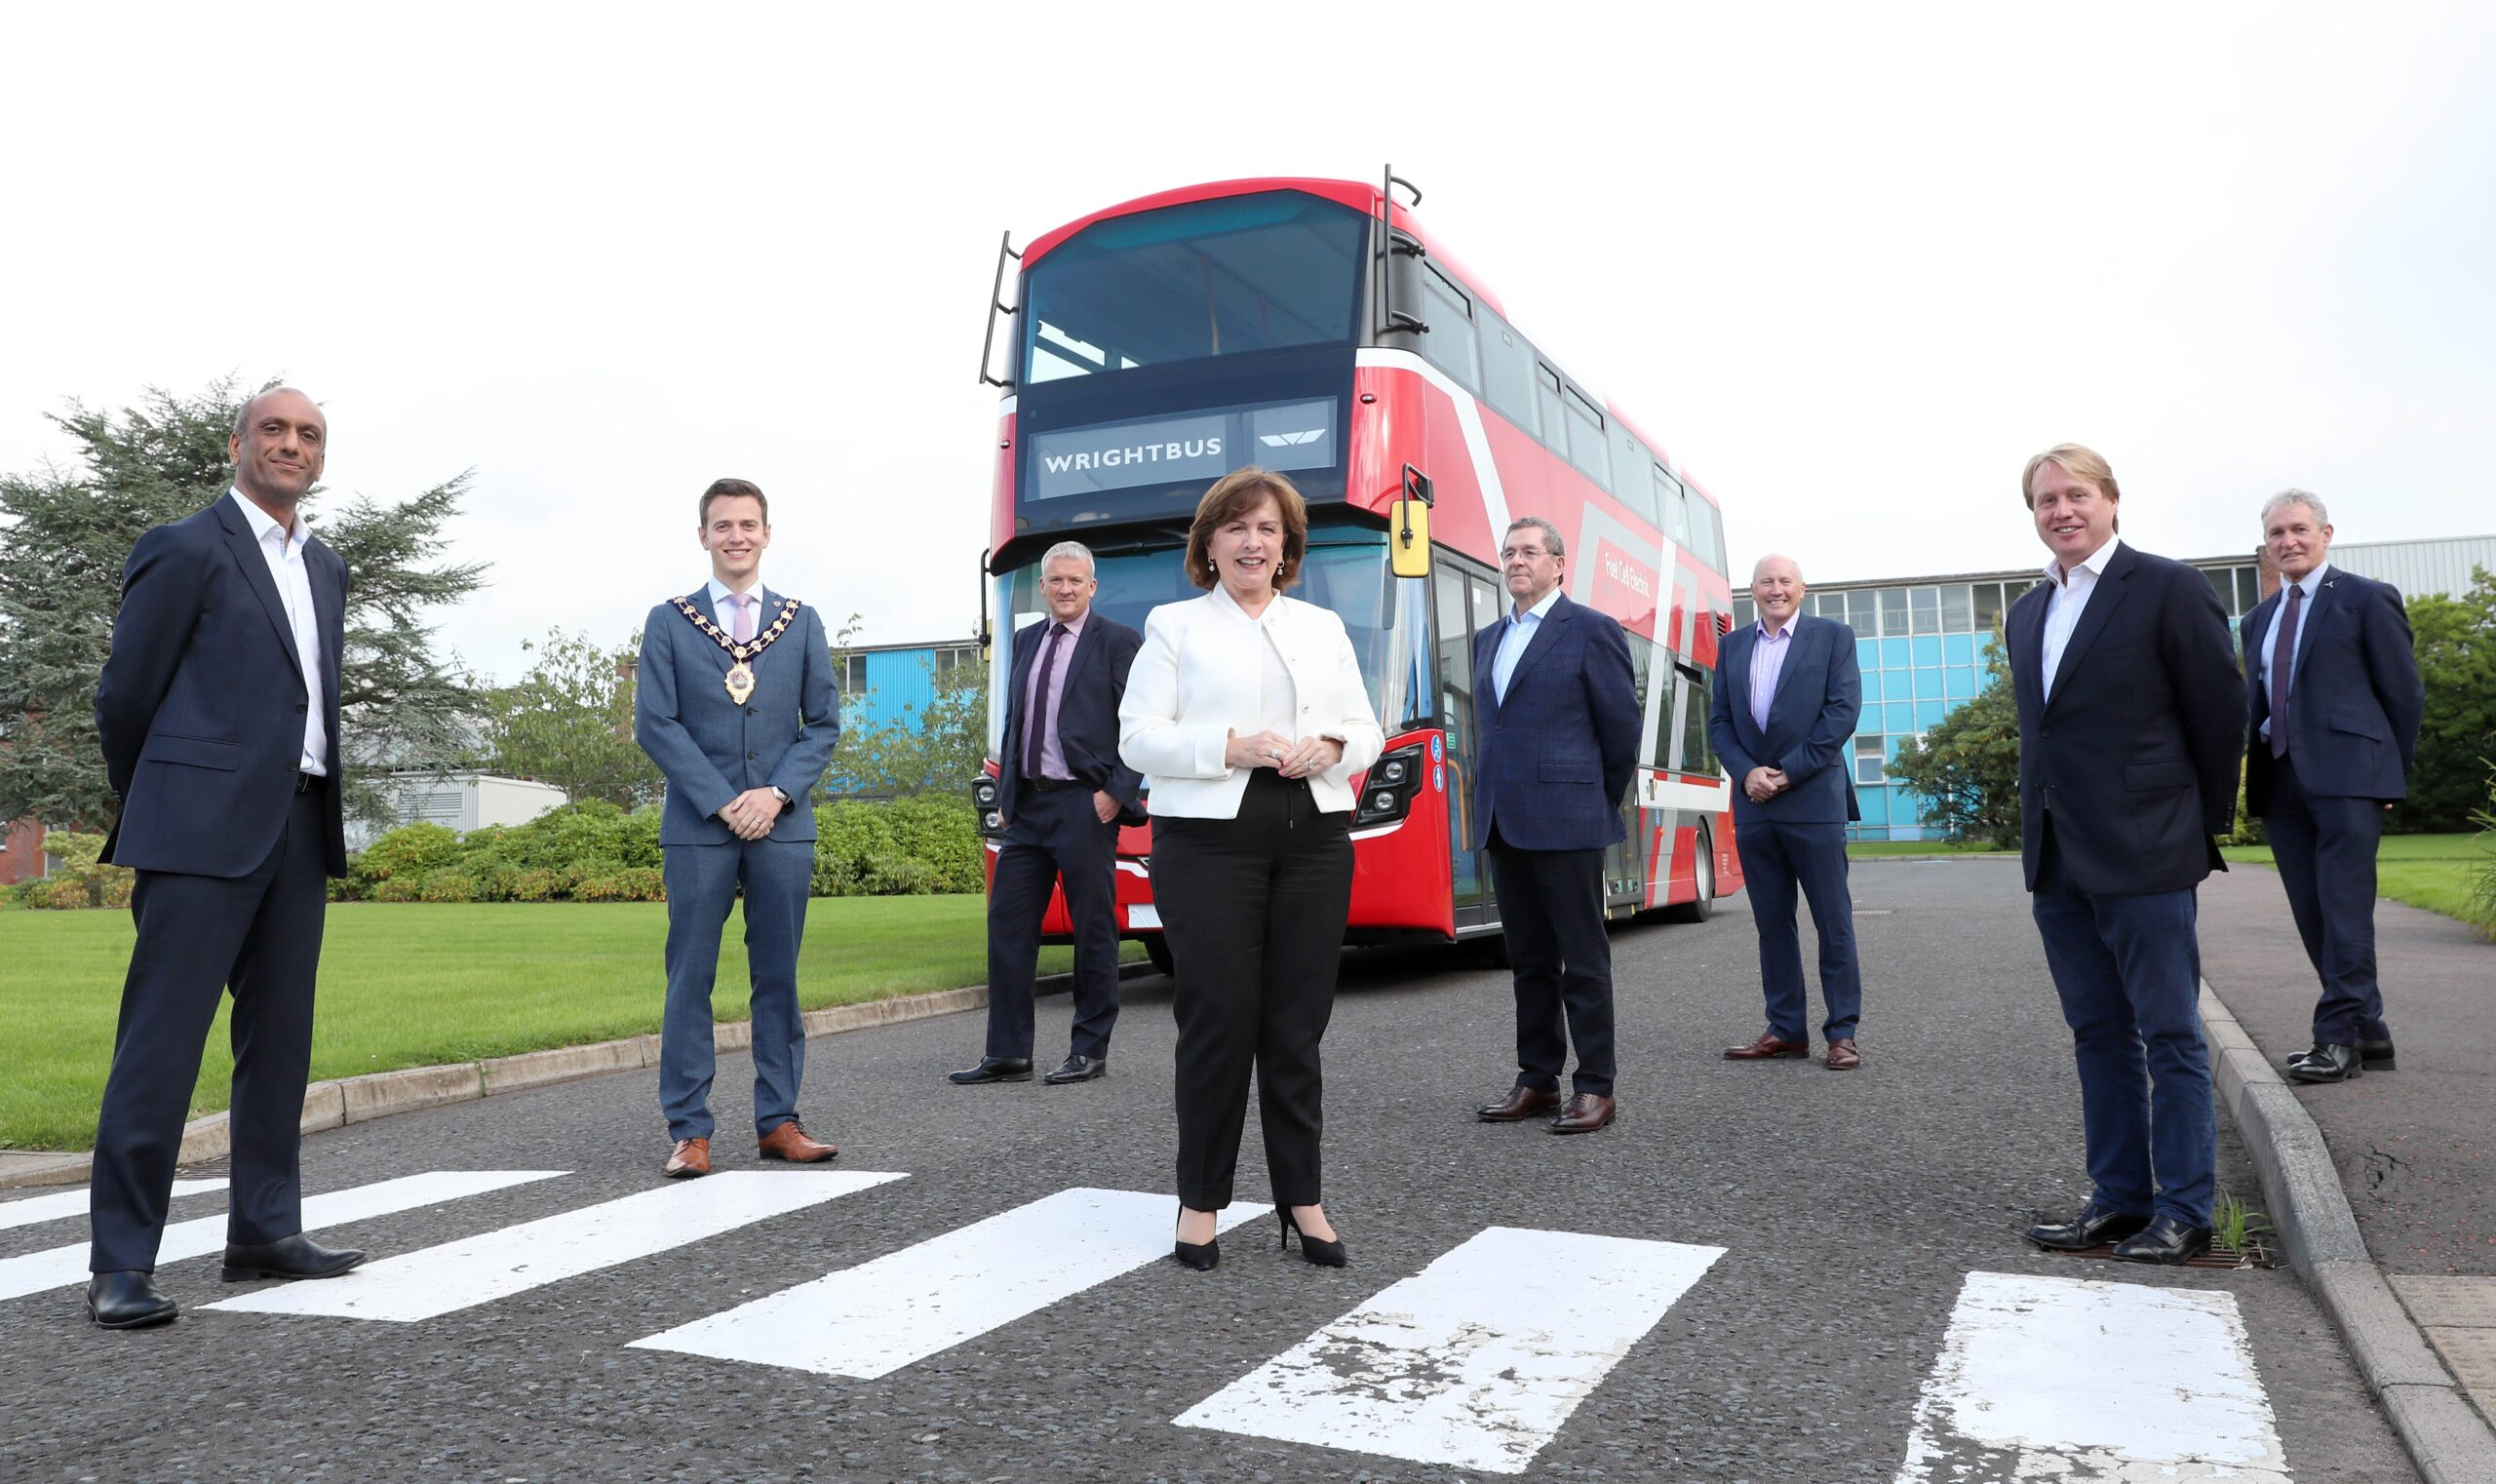 Northern Ireland can be a global leader in hydrogen energy – Dodds - Hydrogen pic - Northern Ireland economy news - Freelance Copywriter NI Tall Paul Marketing